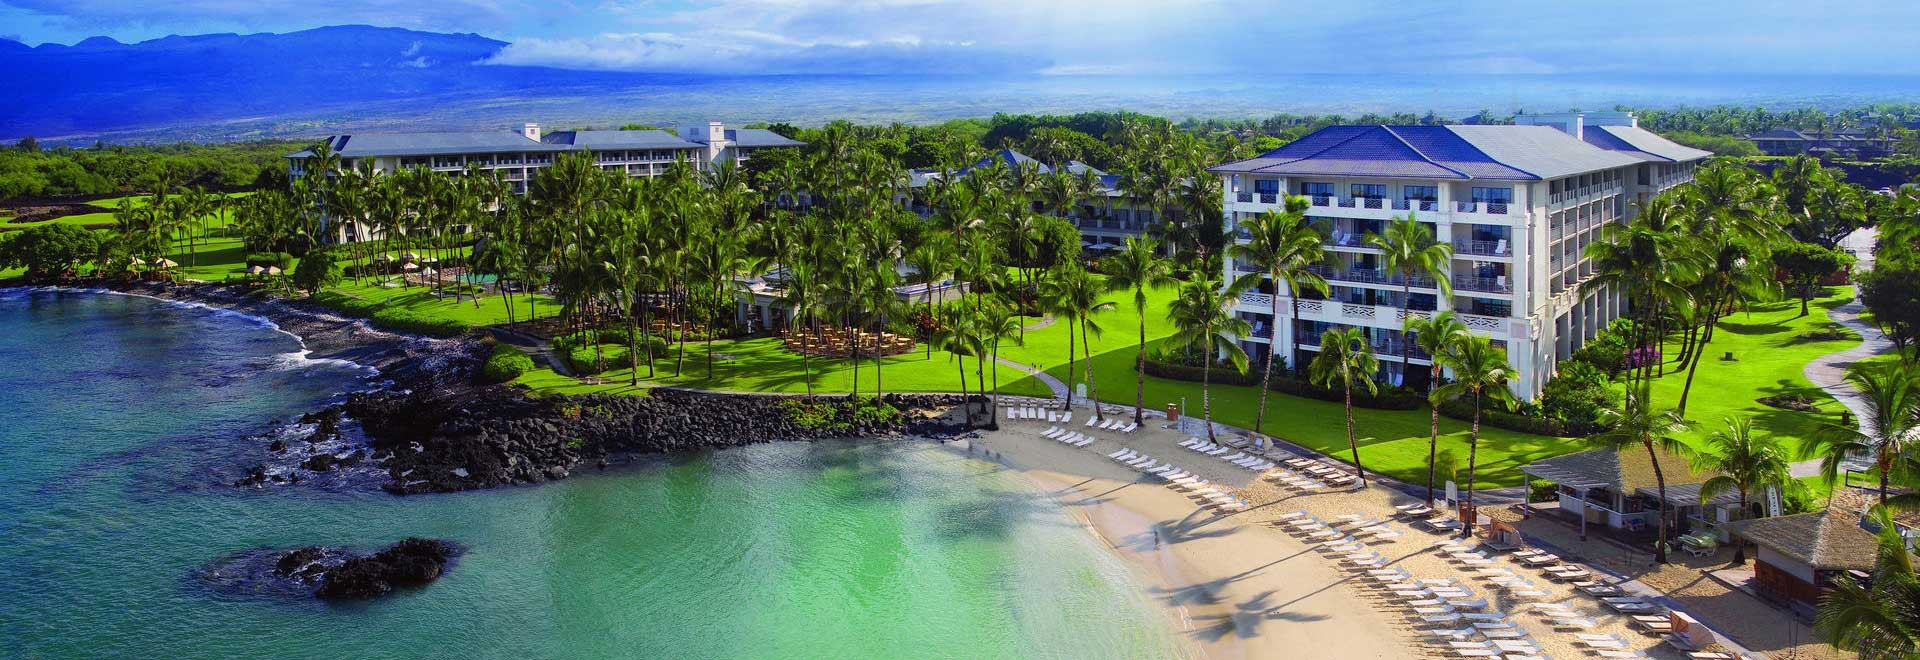 The Fairmont Orchid, Hawaii - Book. Travel. Play.